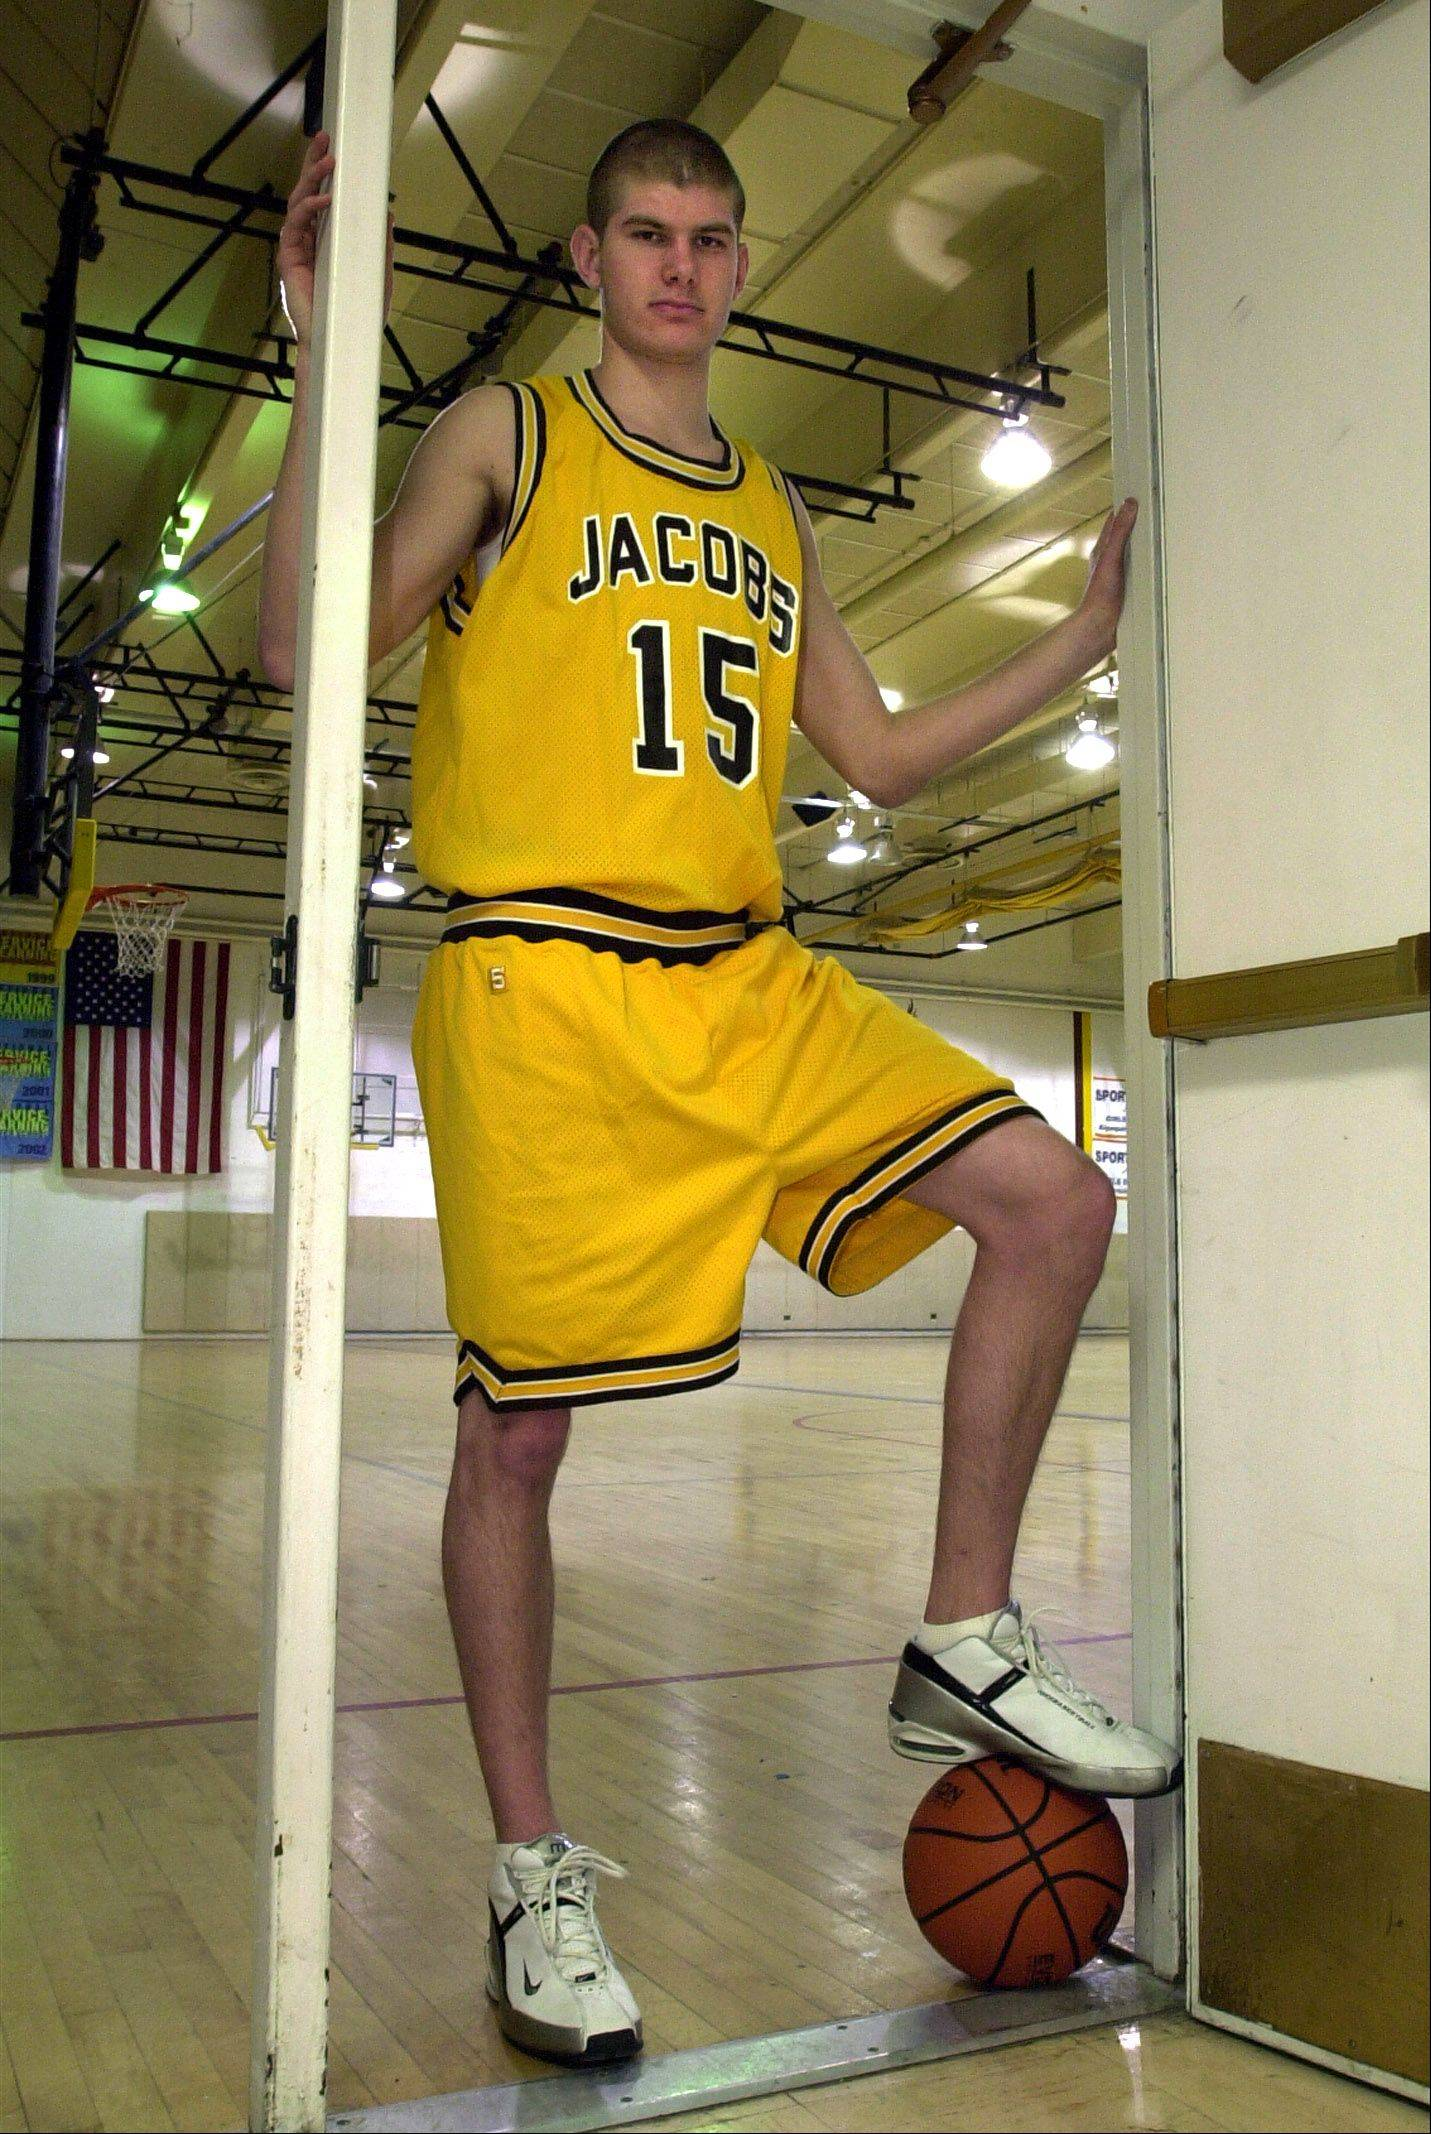 Jacobs graduate Eric Verneisel was the Fox Valley all-area boys basketball captain for 2002-2003. He will be inducted into the Jacobs Athletic Hall of Fame this fall.